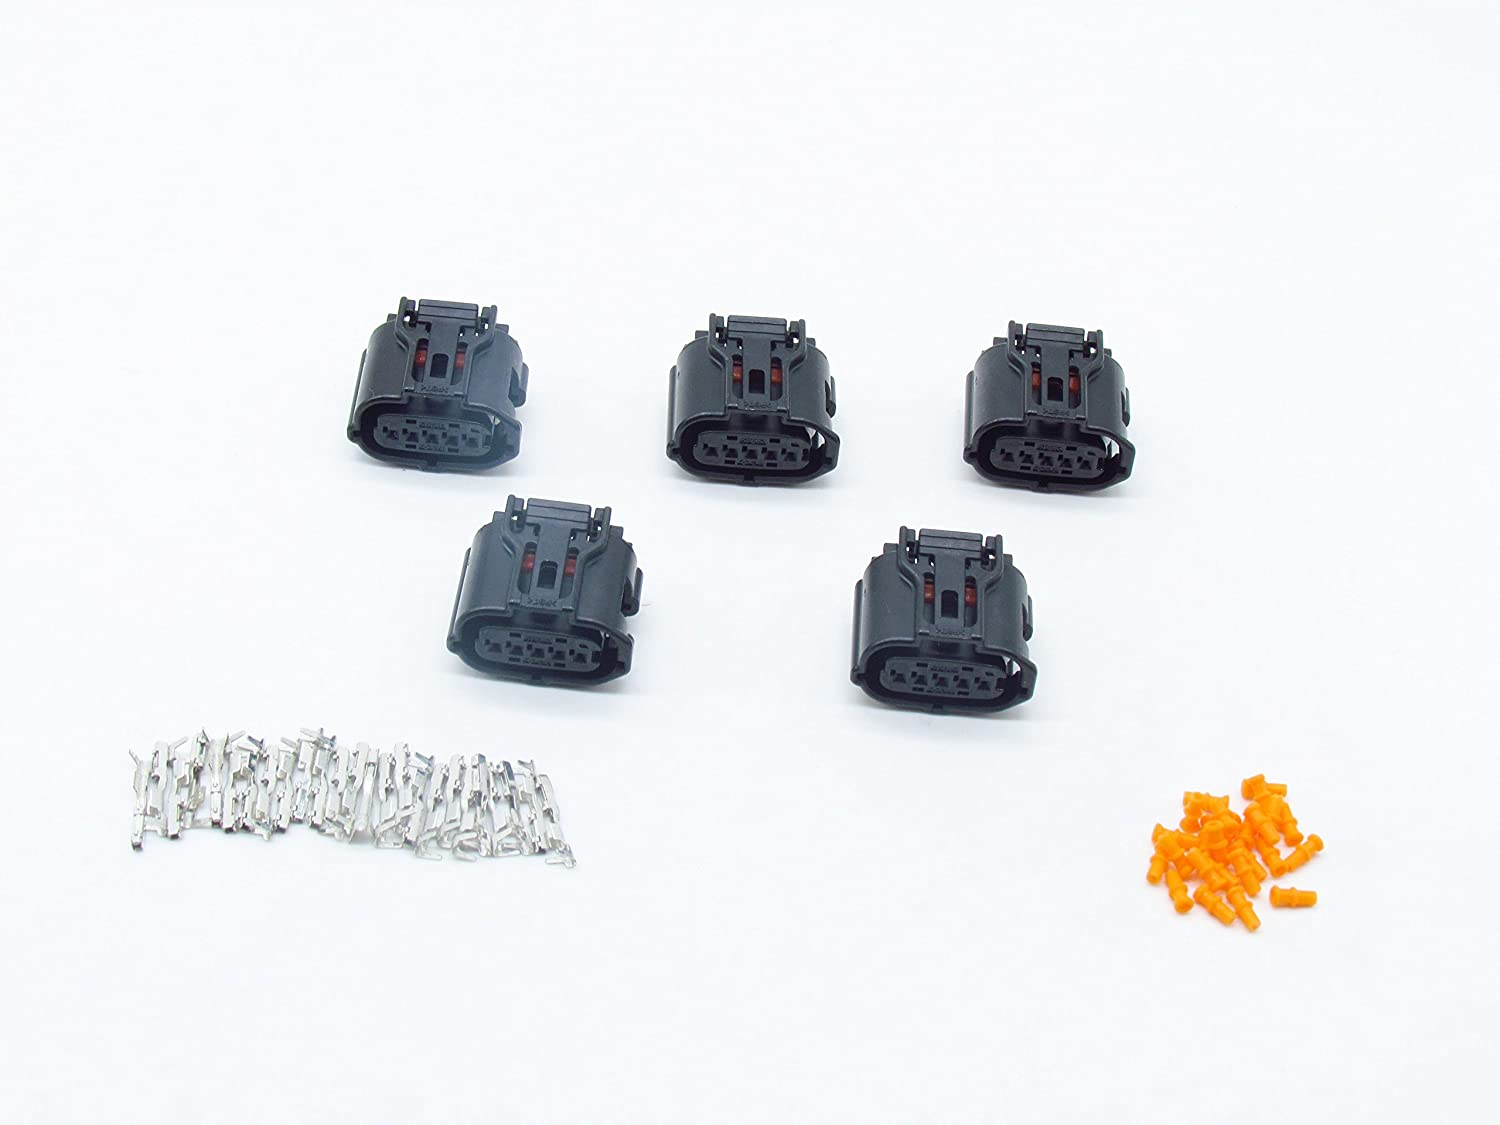 Cnkf 5  set 5  pin way Sumitomo TS Series Maf sensore nero connettore femmina impermeabile auto 6189  –   1046 kaifa elec